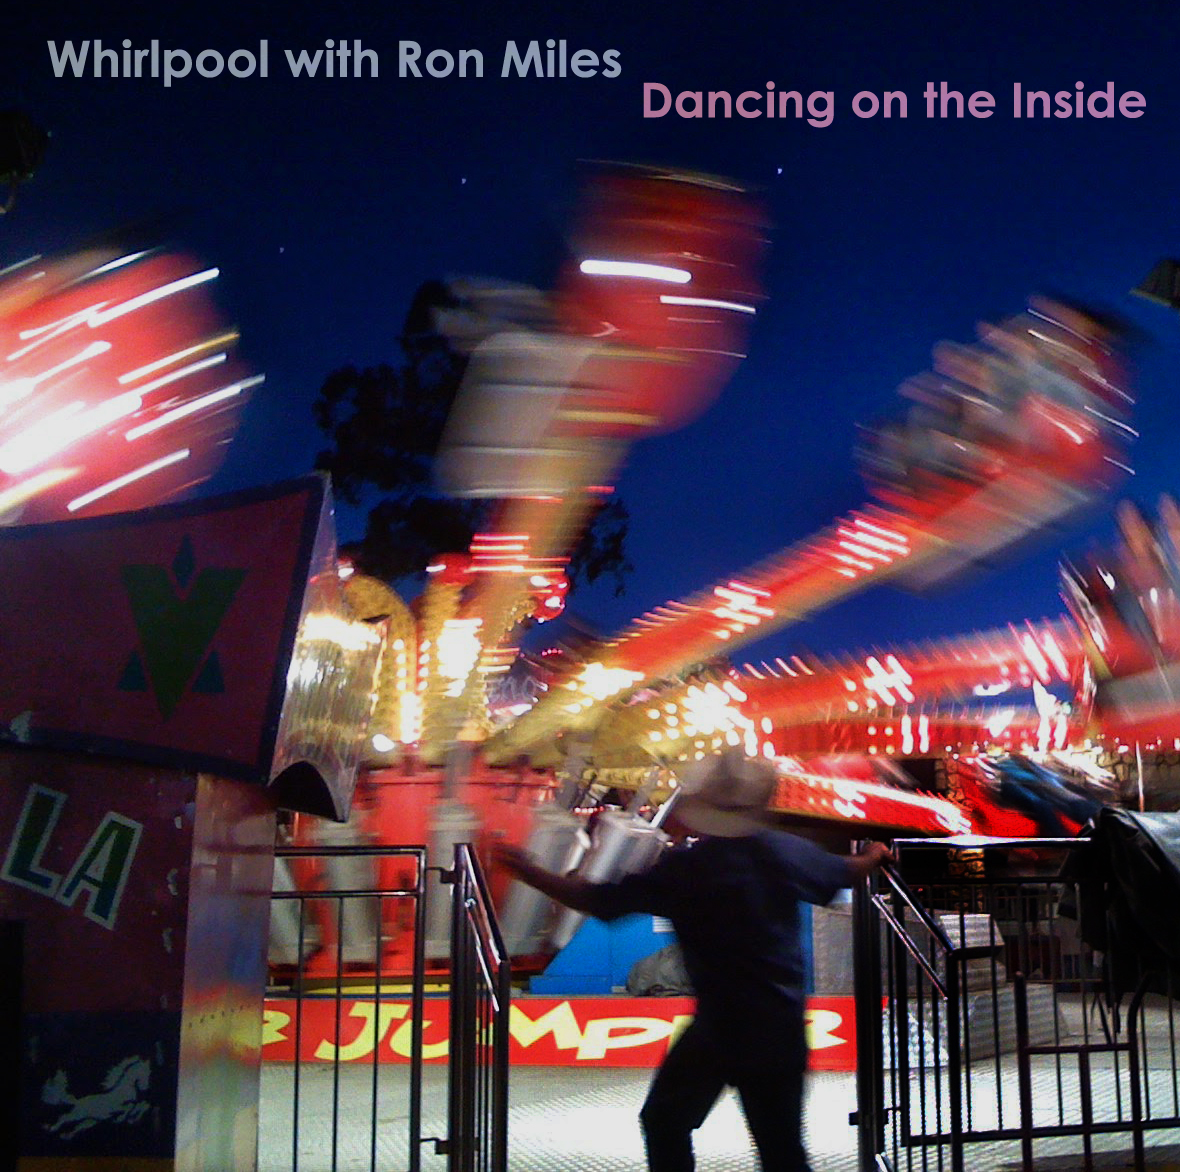 Whirlpool with Ron Miles | Dancing on the Inside   buy:  MP3   CD   BandCamp   iTunes   Amazon